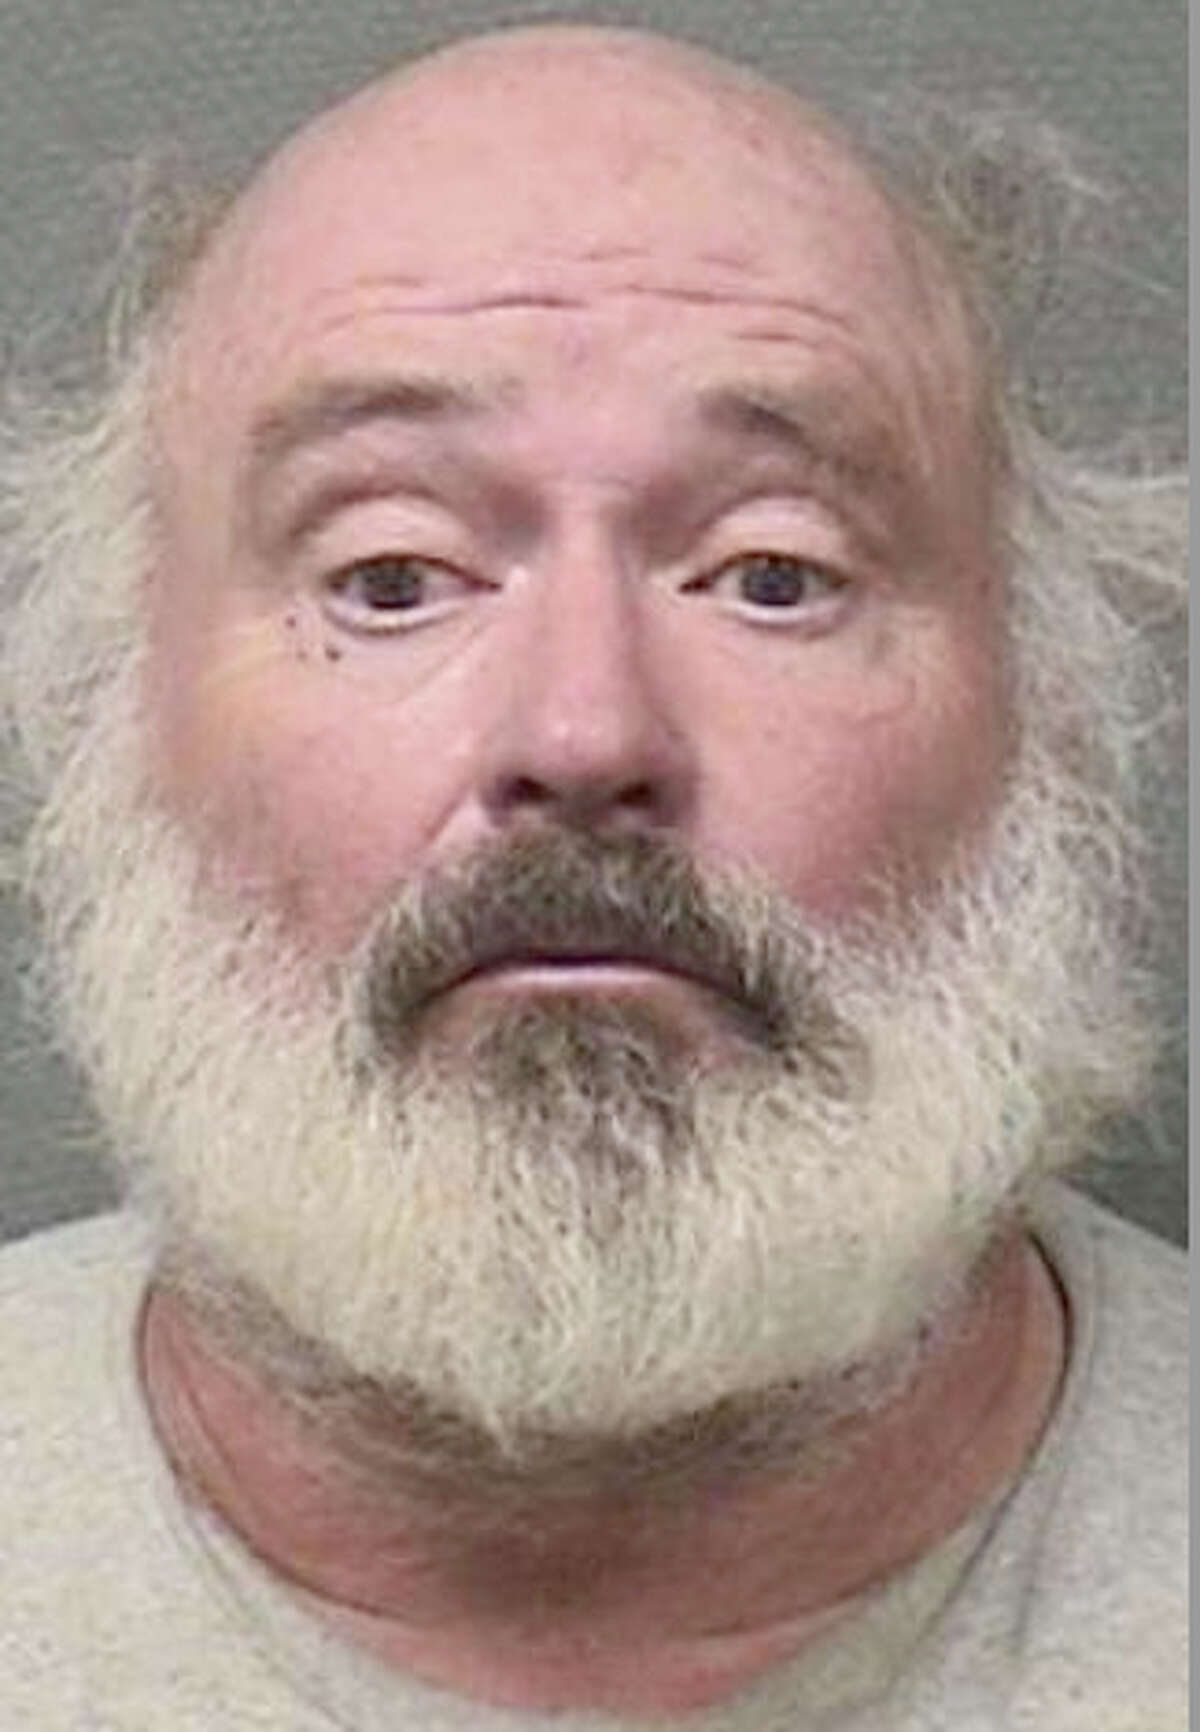 Nine charges of environmental offenses have been filed against Clair Wolf.